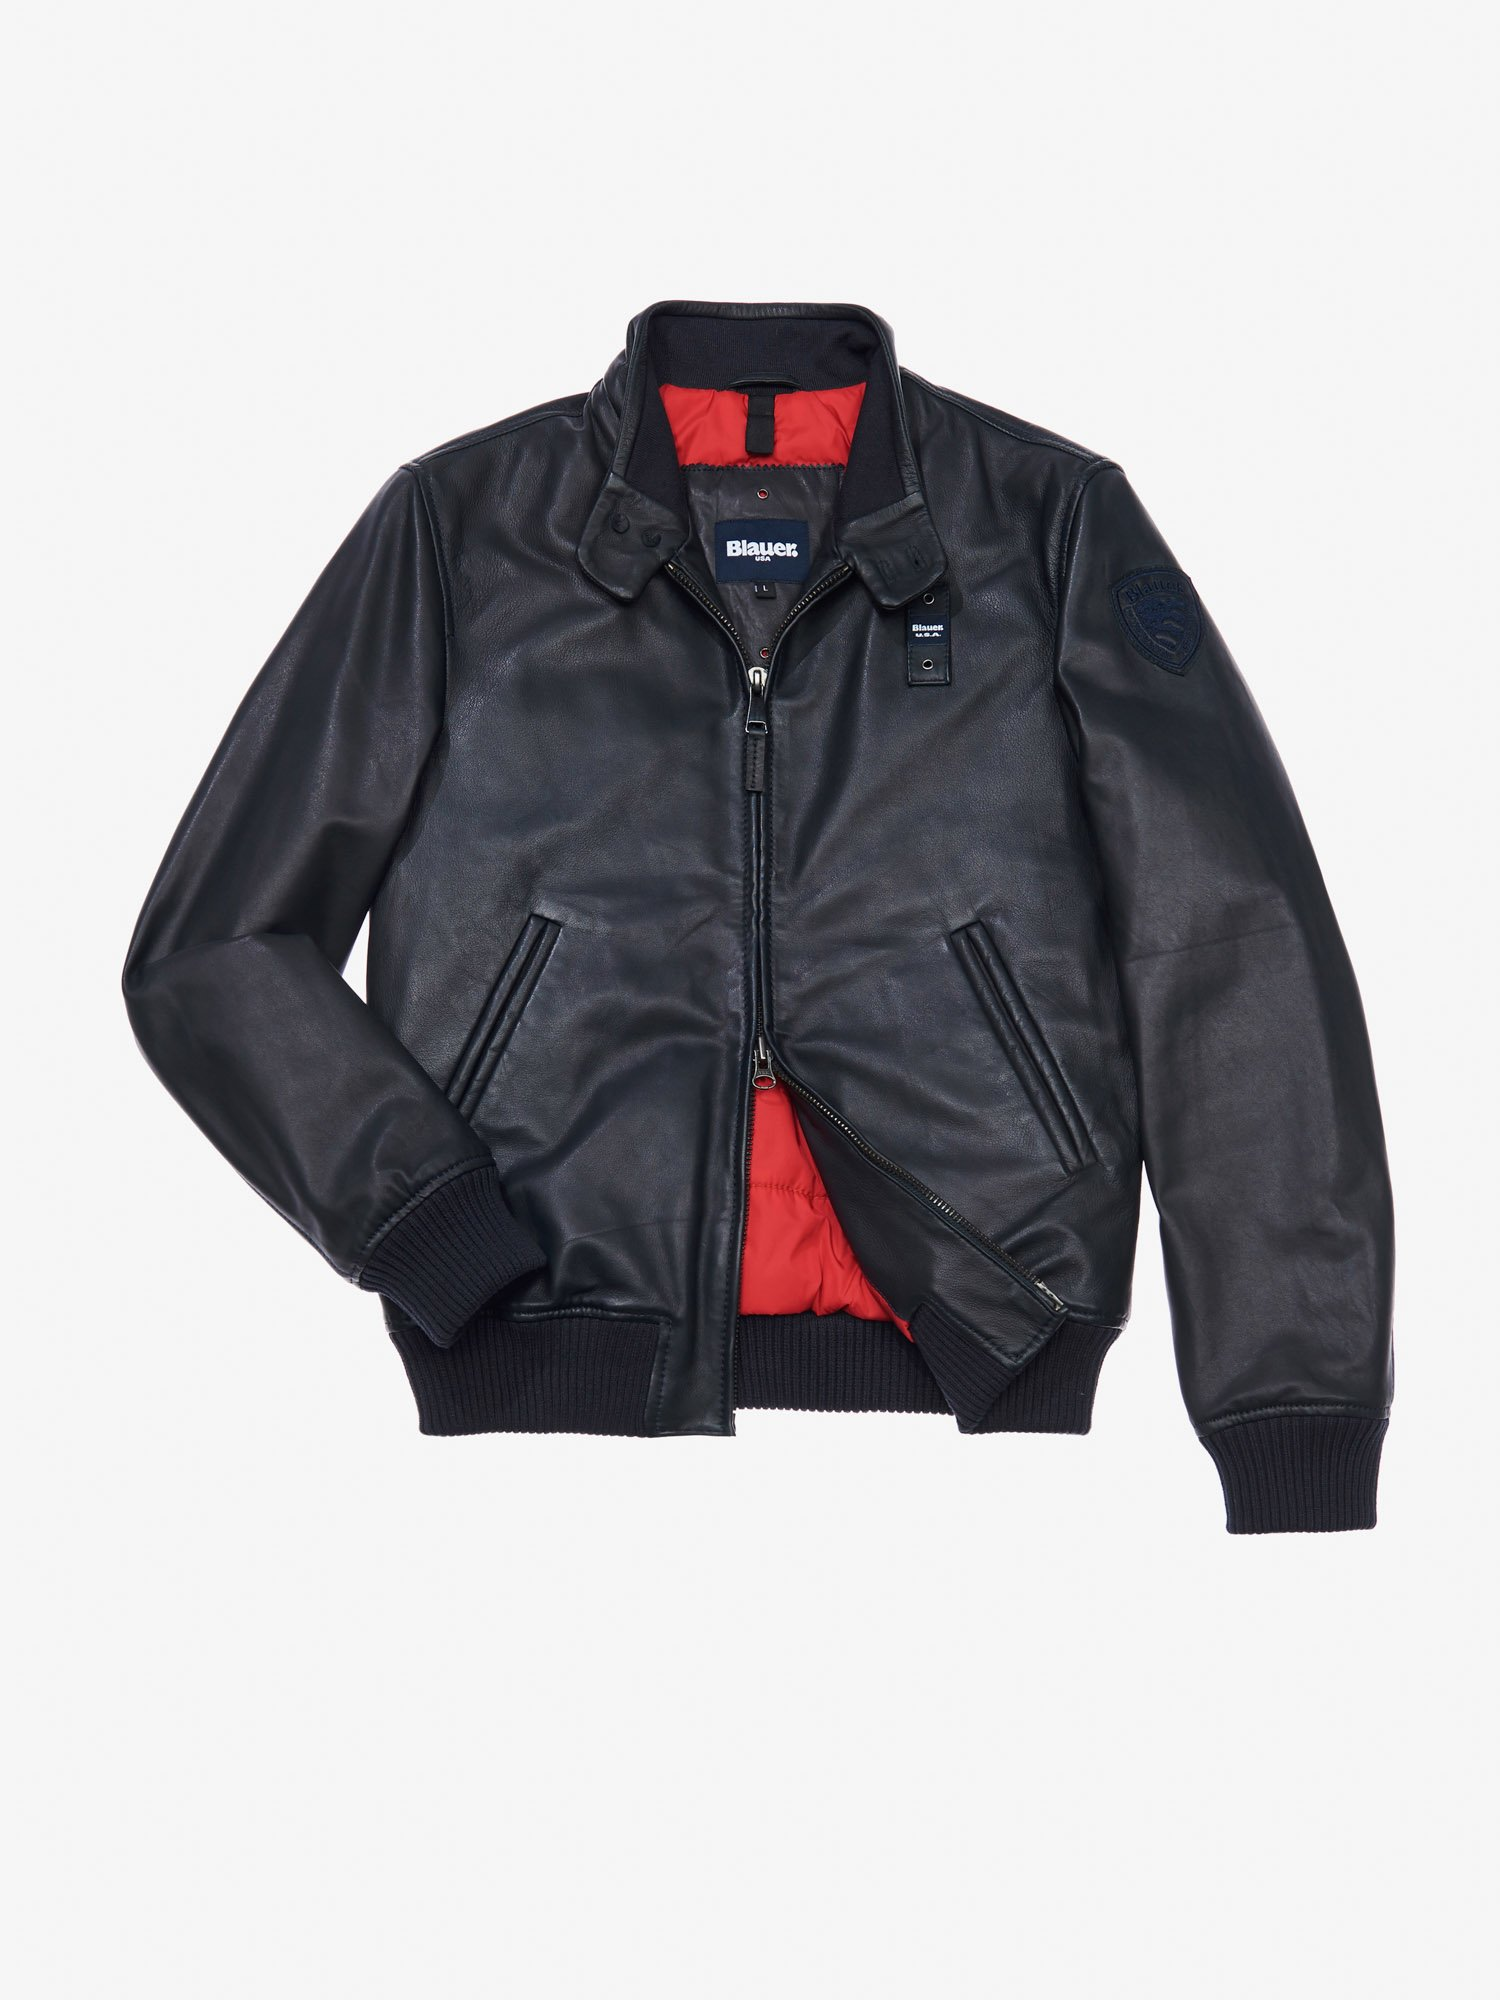 ENRICO PADDED LEATHER BOMBER JACKET - Blauer